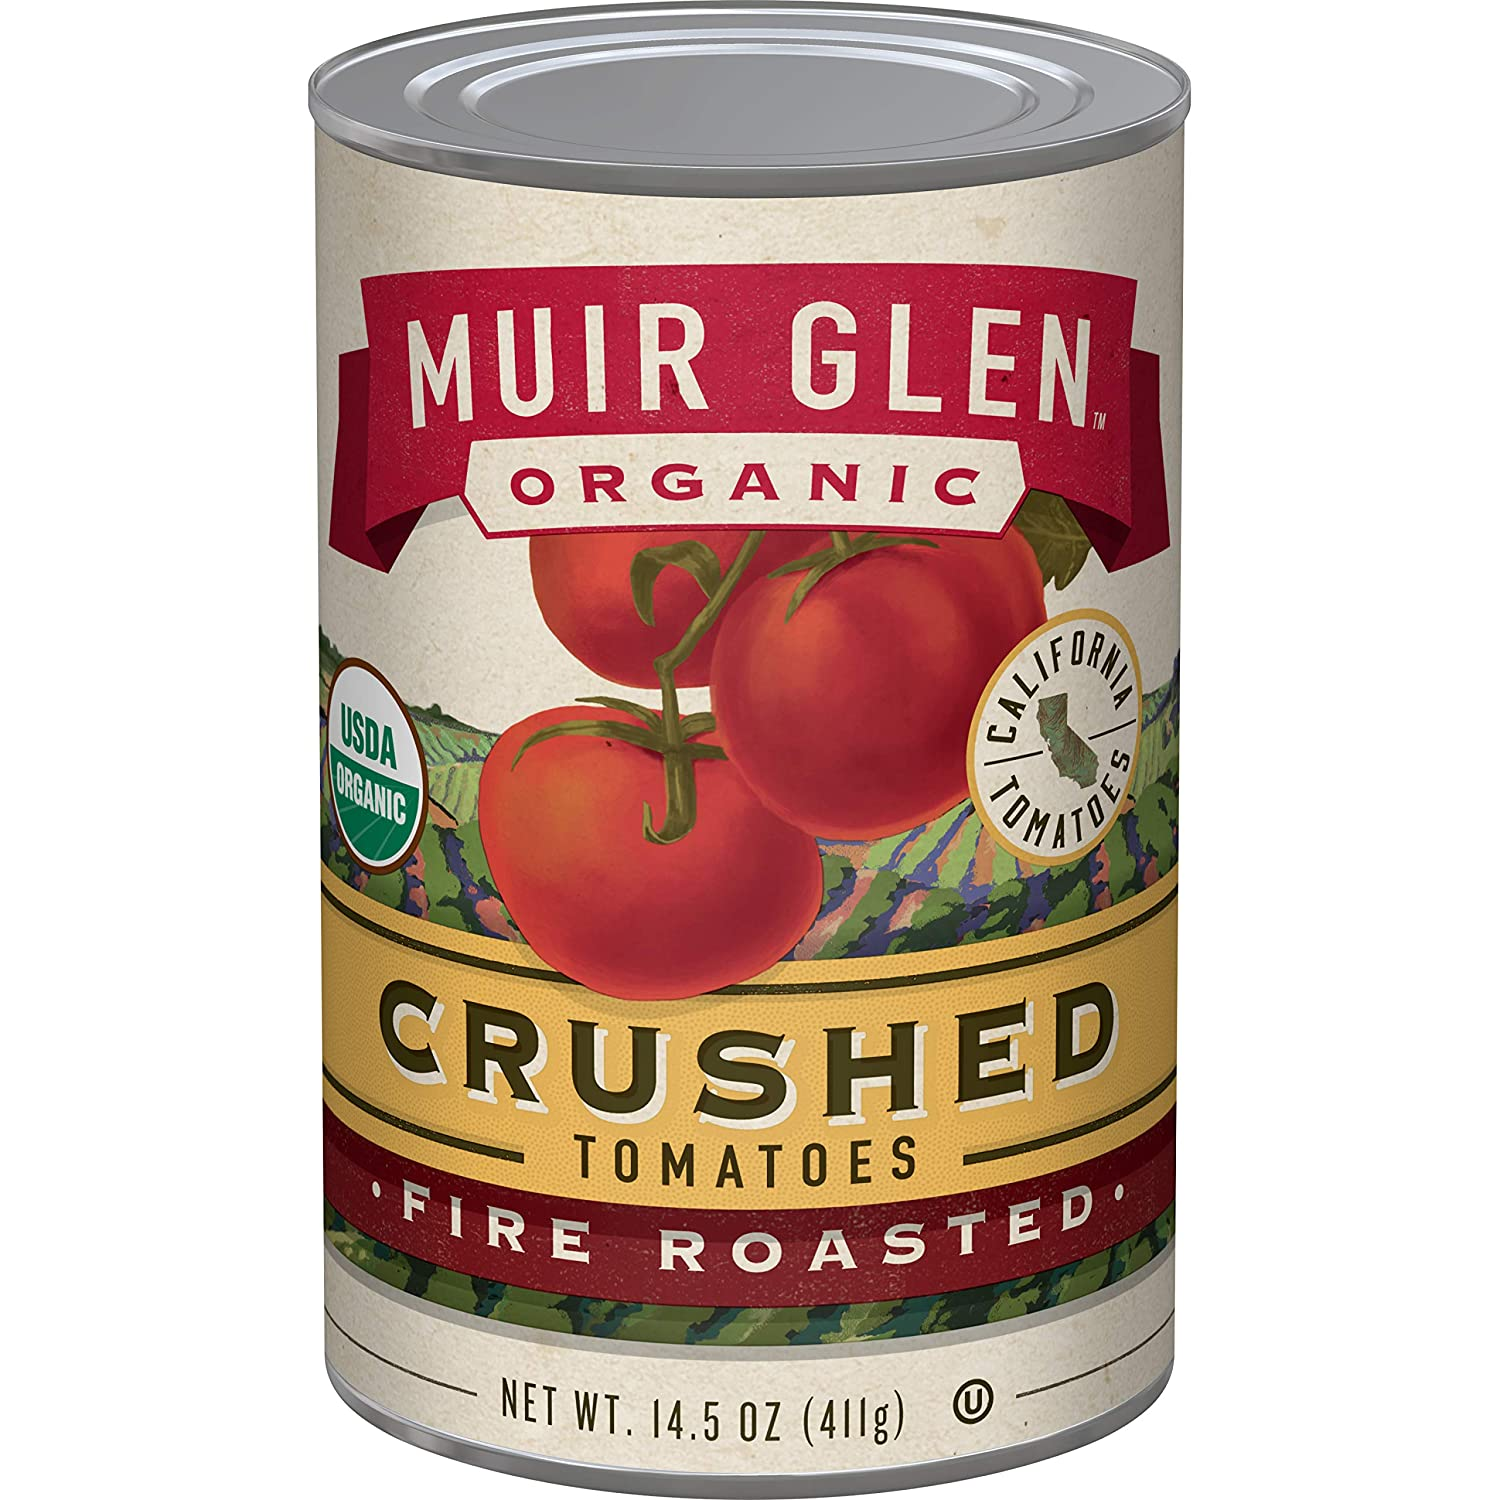 Muir Glen, Organic Crushed Fire Roasted Tomatoes, 14.5 oz